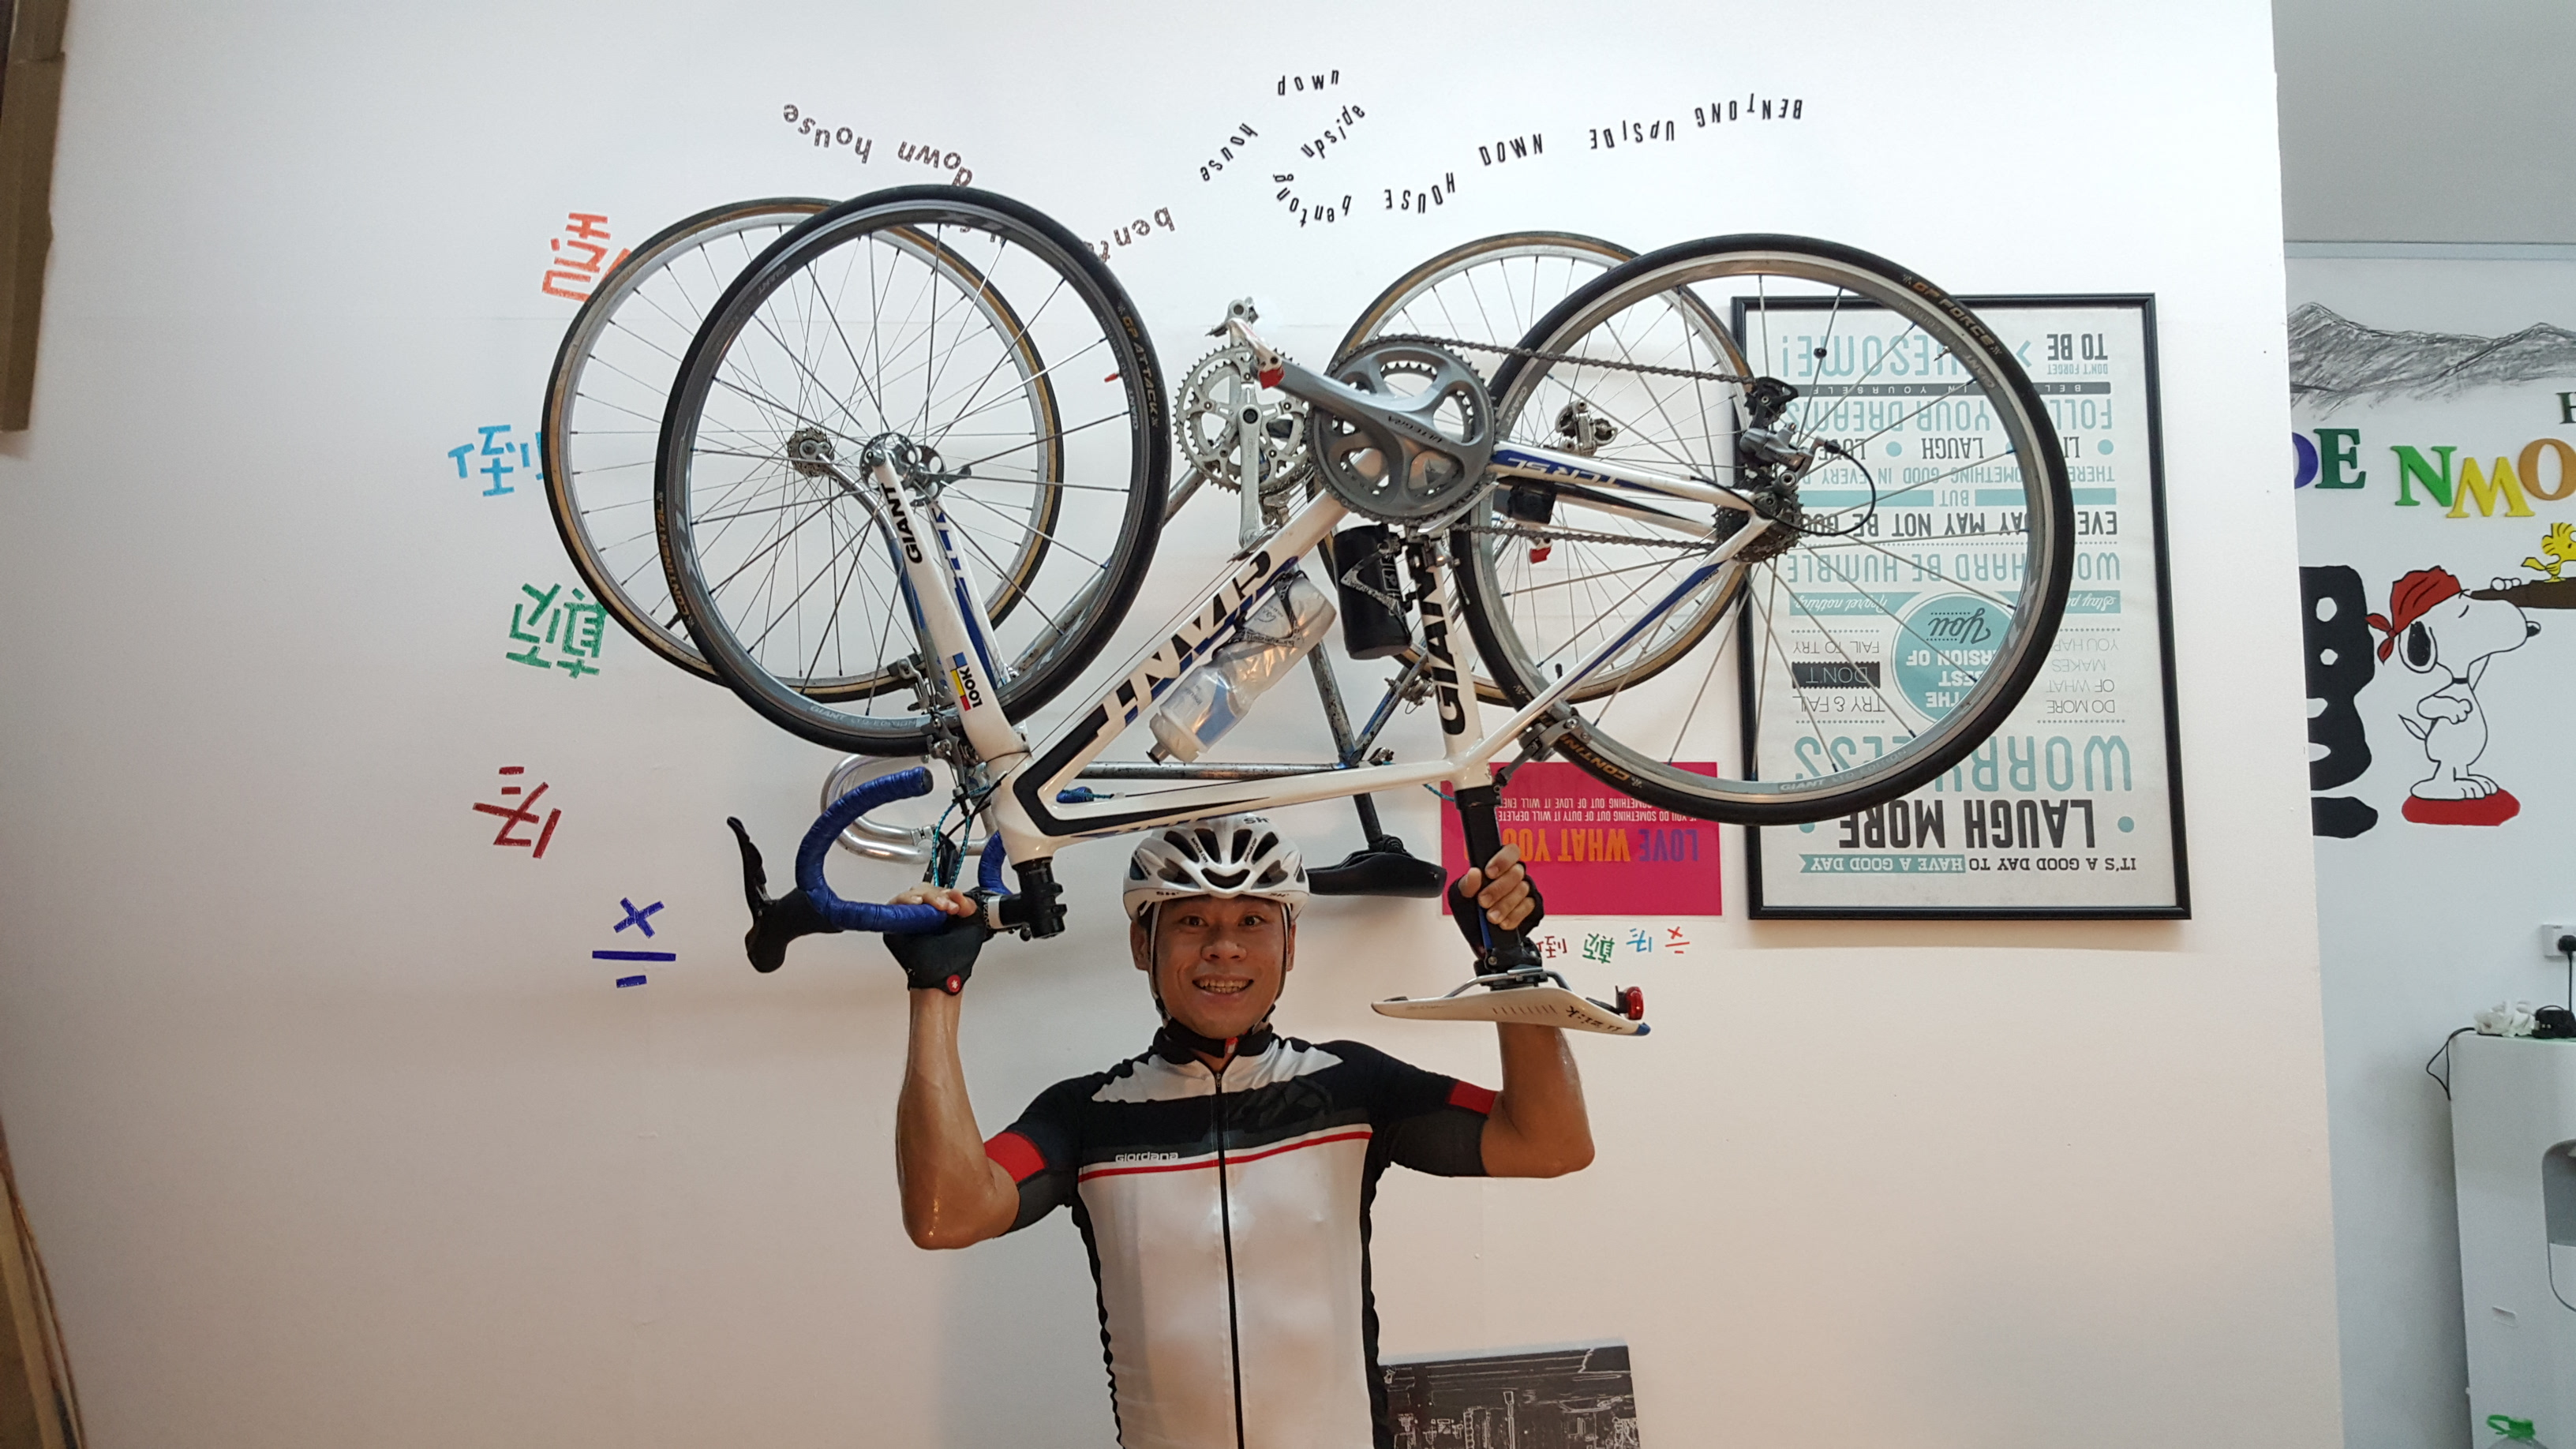 Holding your bike upside down will be easier than ever at the Upside Down House. (Gan Heng Chye)